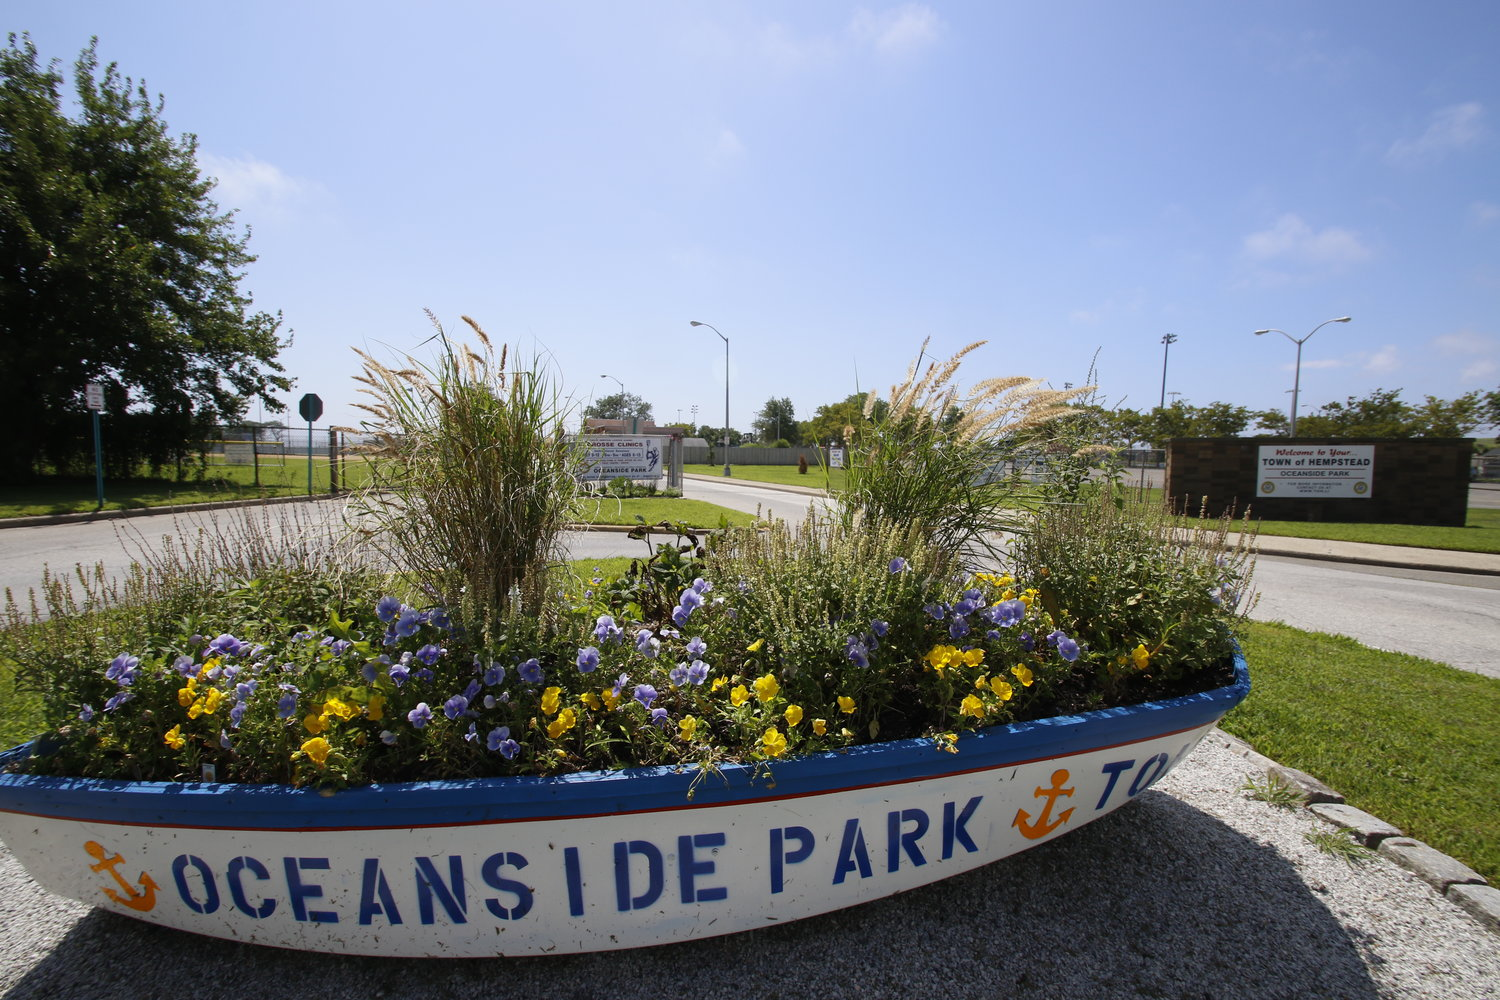 Oceanside Park will be the site of this year's Oceanside High School graduation ceremony, which is usually held on the school football field.